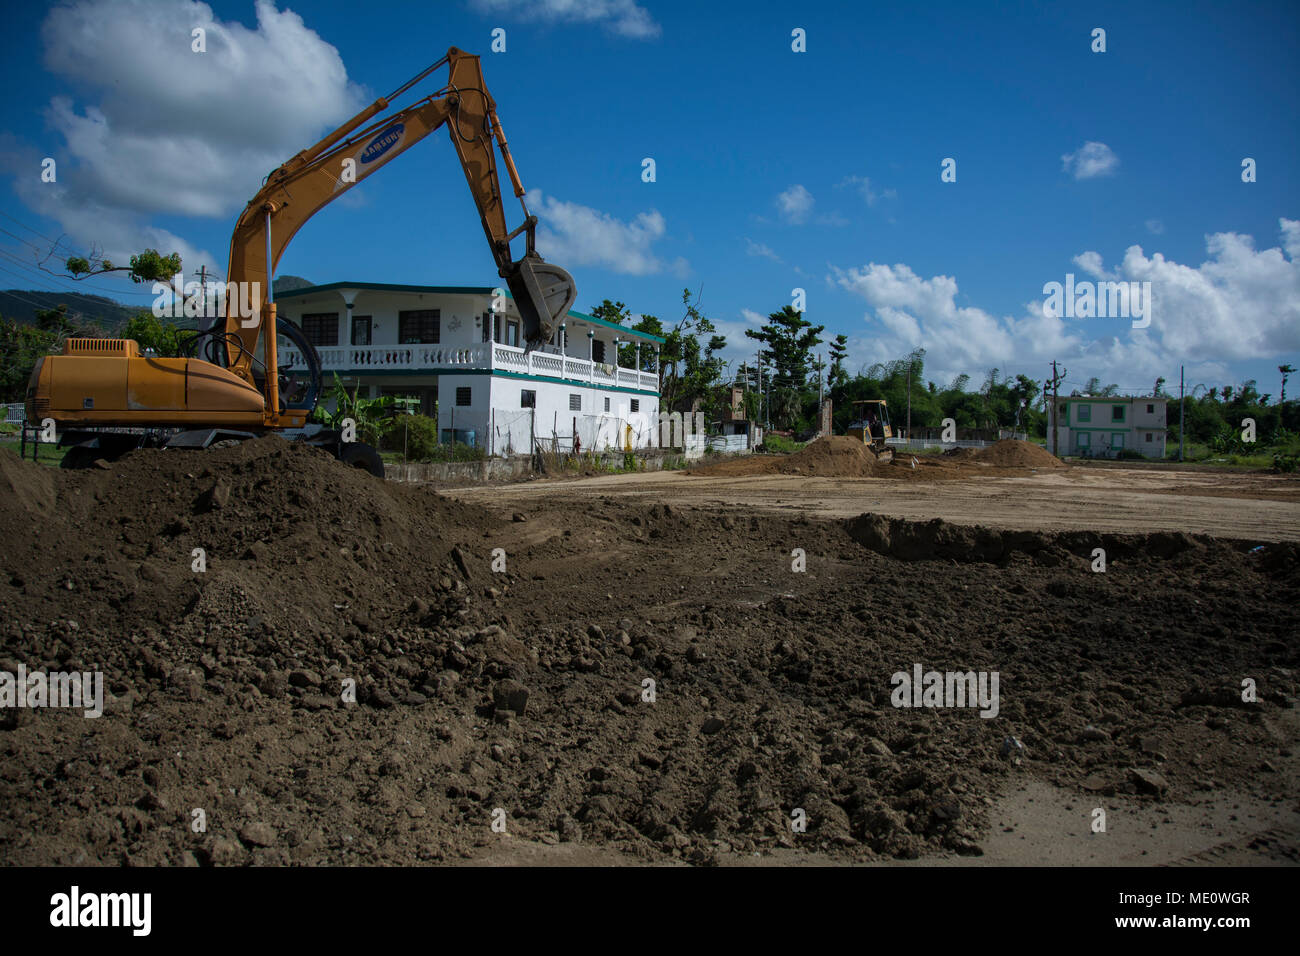 An installation site for a micro grid is prepared in Maunabo, Puerto Rico, on Dec. 17, 2017. The site will host the third micro grid installation on the island, bringing electricity to nearby buildings. The concept is significant in that it is a temporary power mission – usually intended to support critical infrastructure during an emergency – to bringing electricity to residents and businesses. The installation – the second micro grid installed on the island – will be operational by midweek, with the third set to open in nearby Maunabo shortly after. - Stock Image